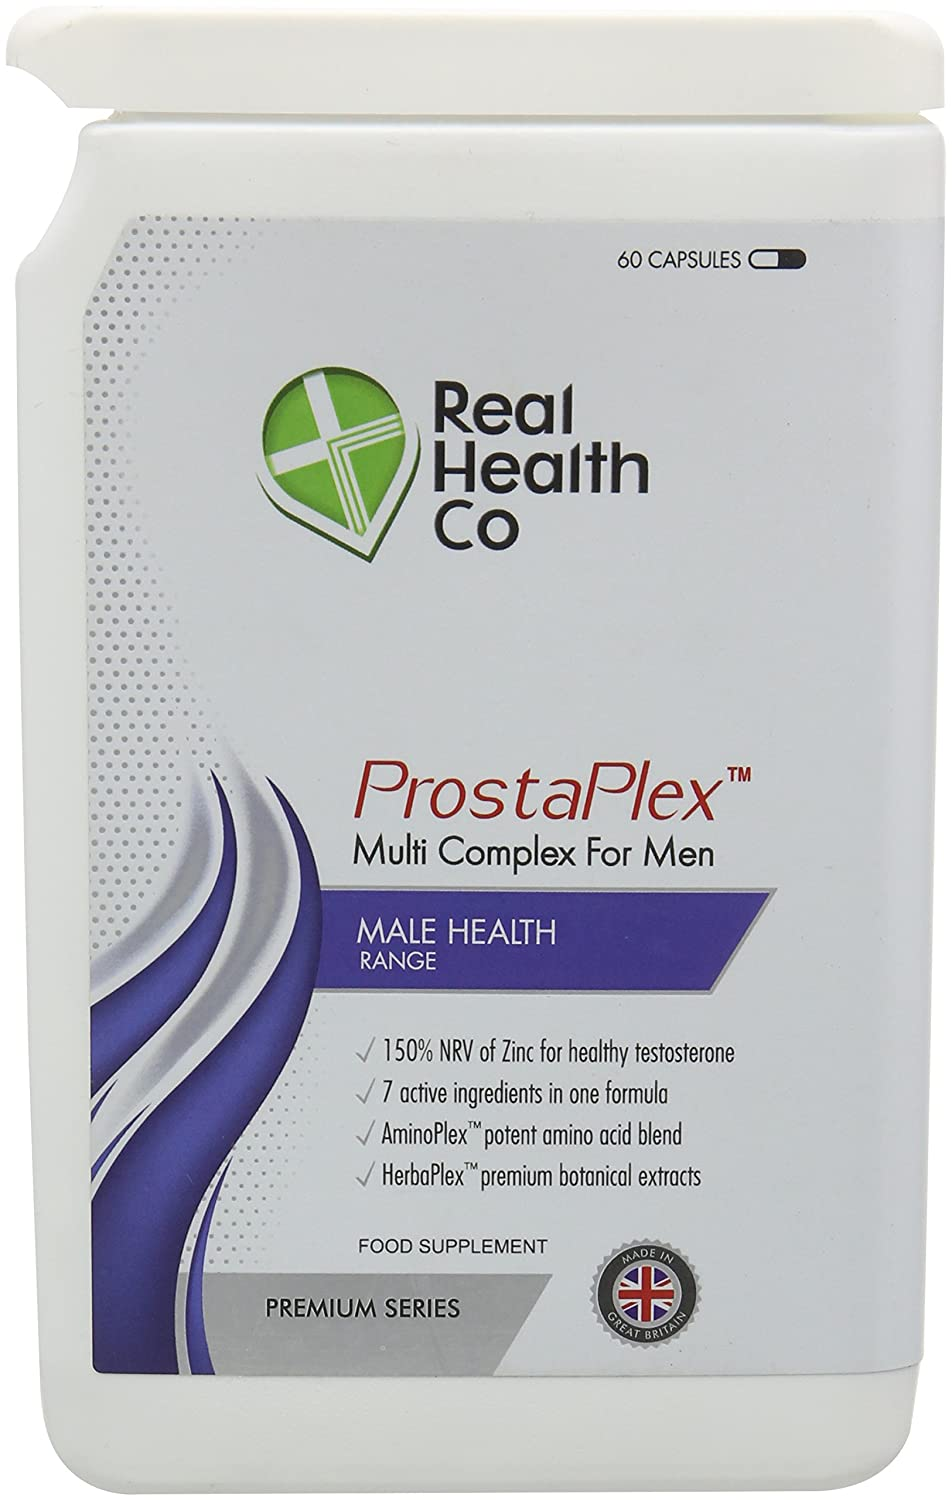 Real Health Co Prosta Plex Male Health Formula Capsules